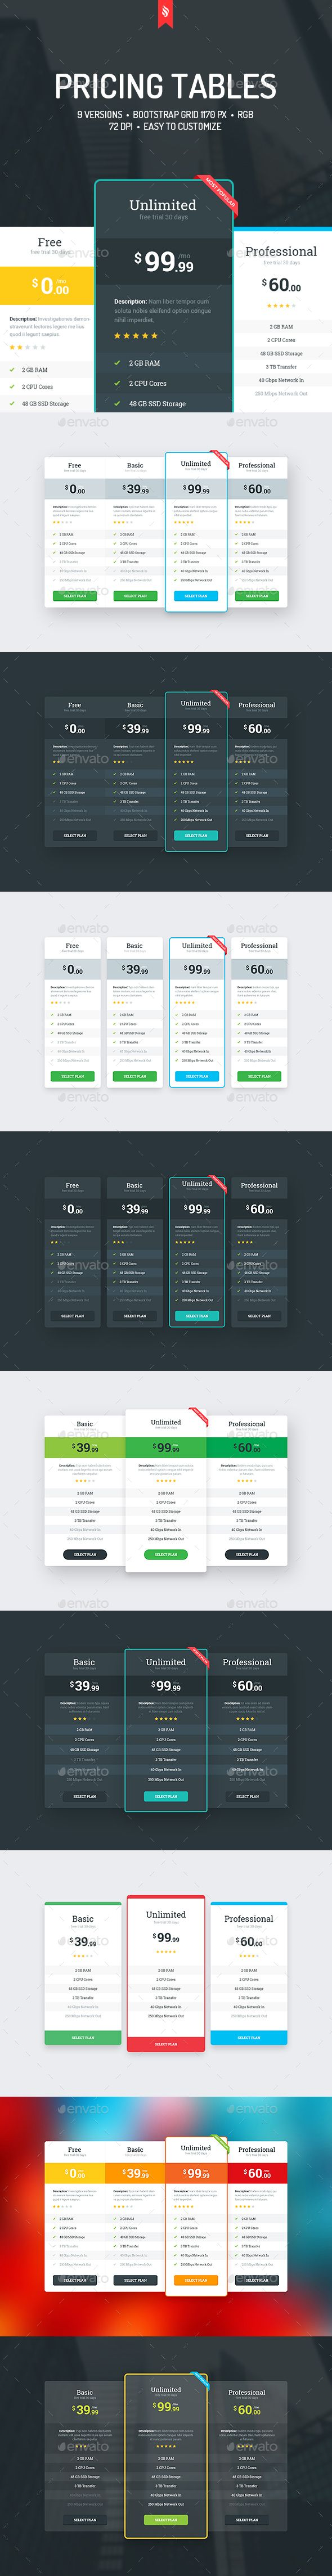 9 Pricing Tables Template PSD. Download here: http://graphicriver.net/item/9-pricing-tables/15572810?ref=ksioks